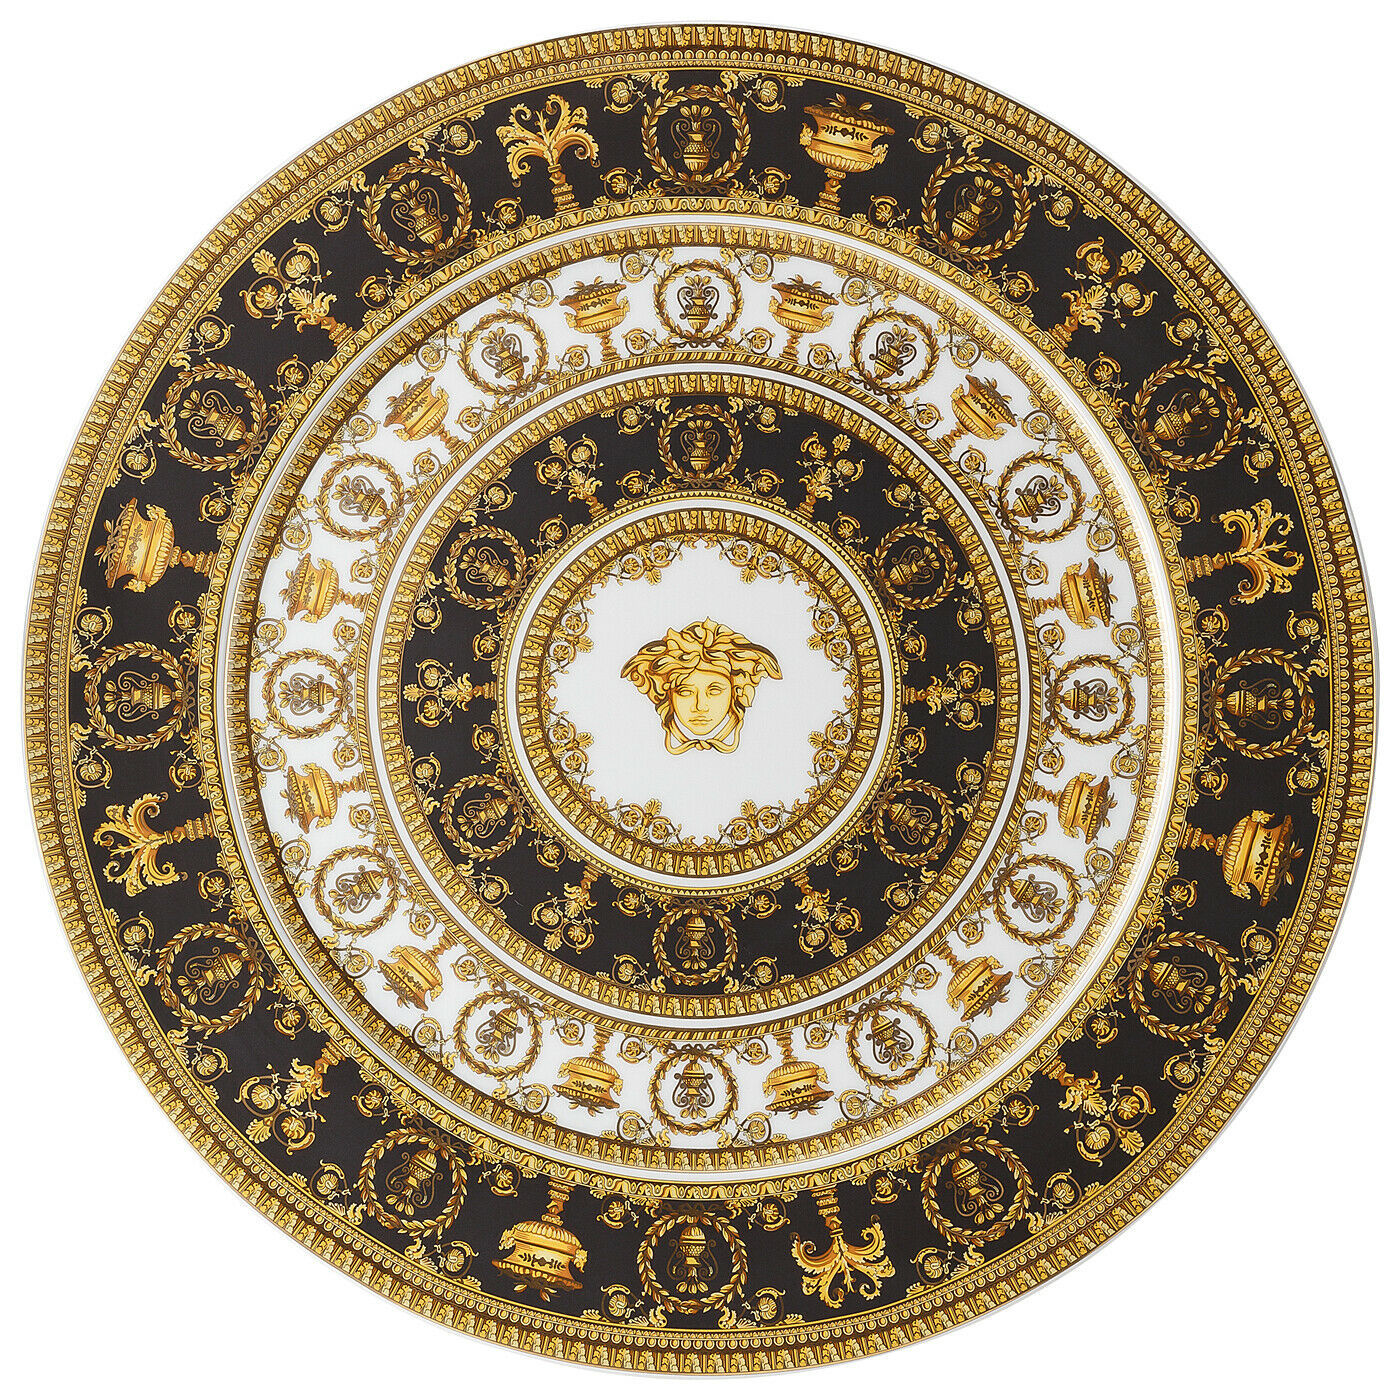 Versace I Love Baroque Service Plate 33 cm Porcelain Made in Italy - $261.45